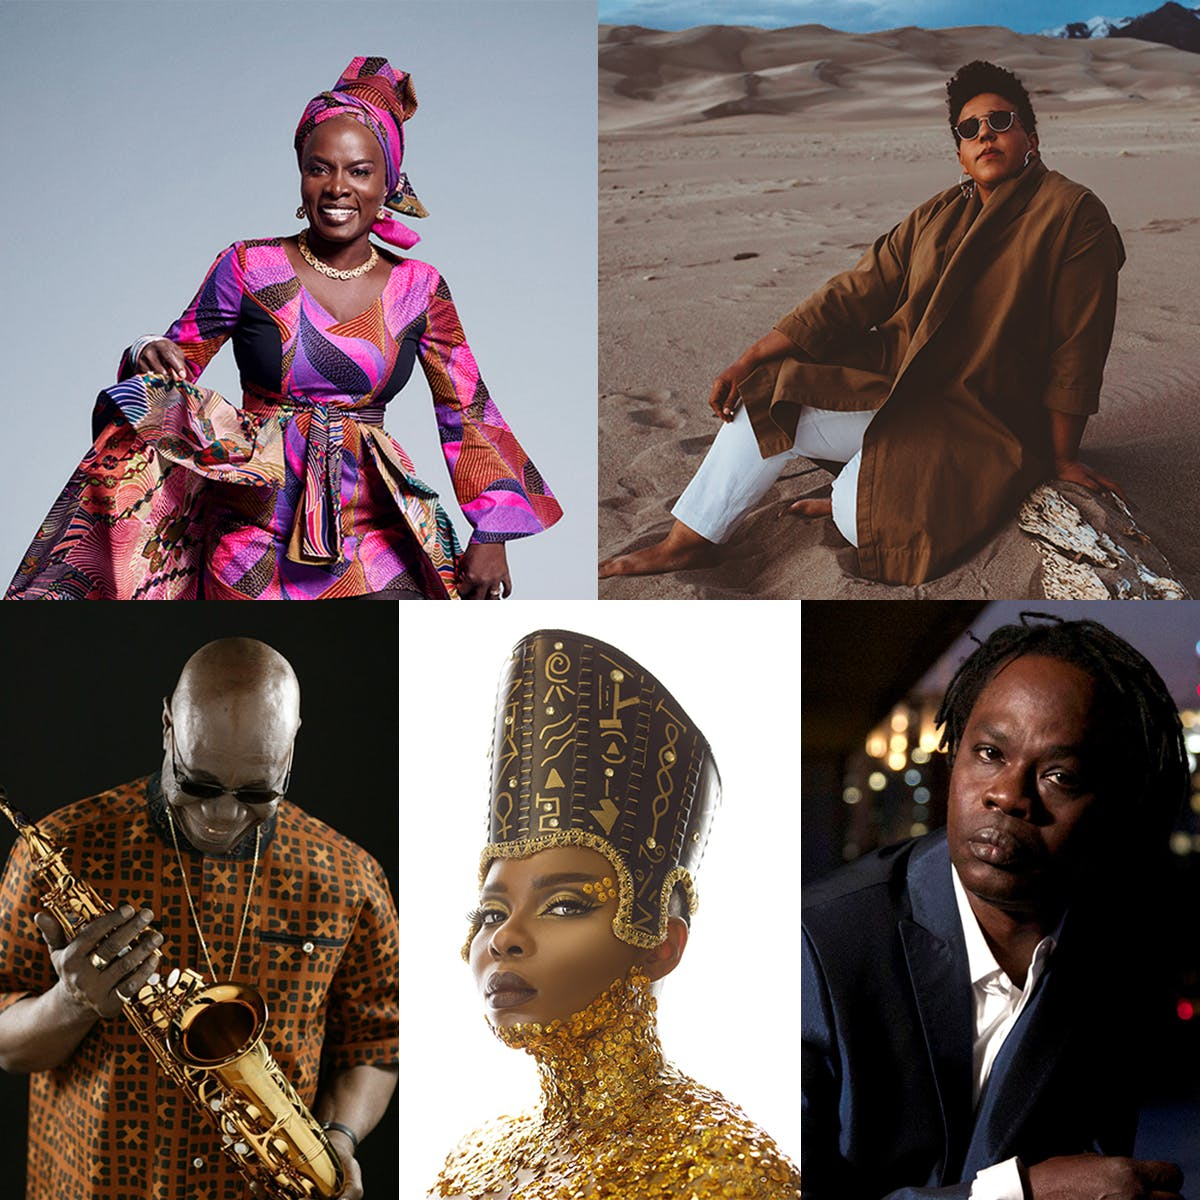 (top L to R) Angélique Kidjo, Brittany Howard; (bottom L to R) Manu Dibango, Yemi Alade, Baaba Maal